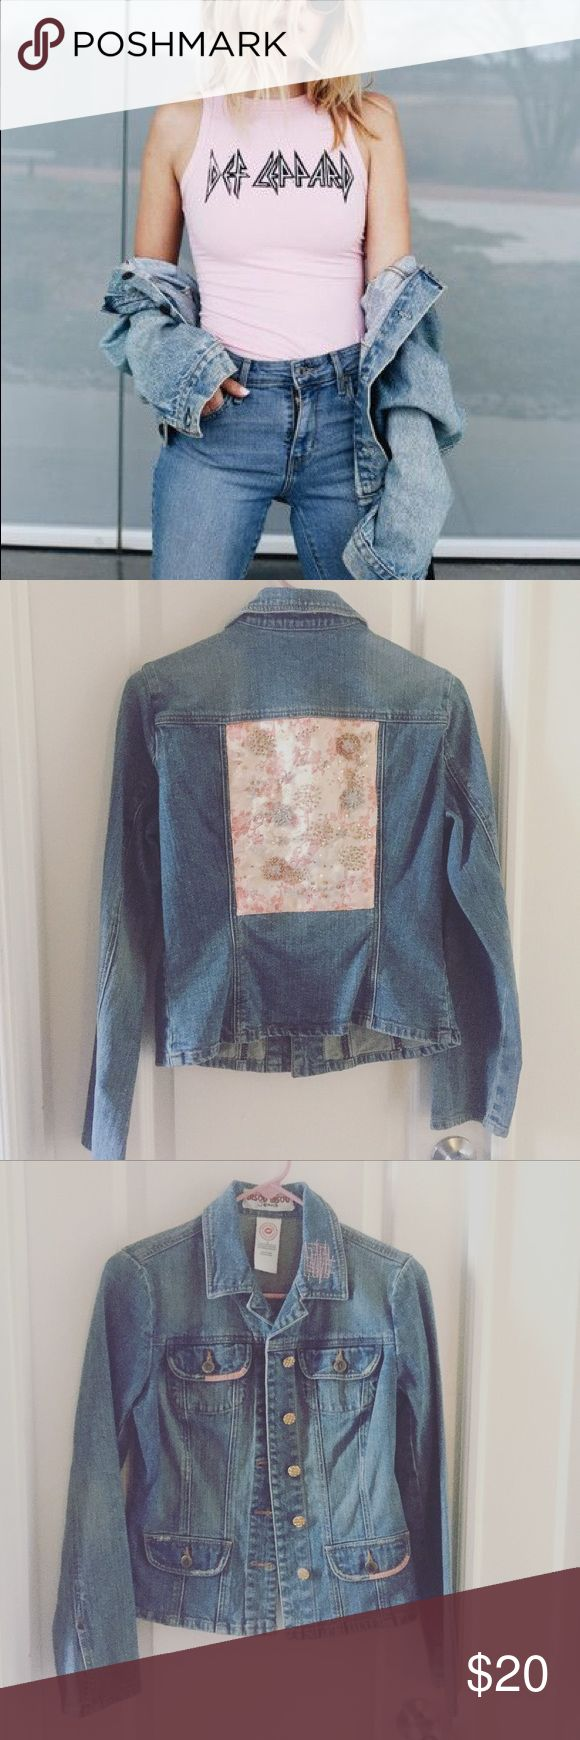 Vintage - Jean Jacket - Pink Embroidery Vintage - 90's Style Denim Jean Jacket Size Medium (Woman's) - Denim Jean Material - Semi loose fitting. Light wash Blue Denim - Comfortable & Hipster - NWOT. Perfect new condition - Distressed - Pink embroidery with sequins on the back w/ pink stitches - Vintage style - Grunge - 90's Style American Vintage Jackets & Coats Jean Jackets